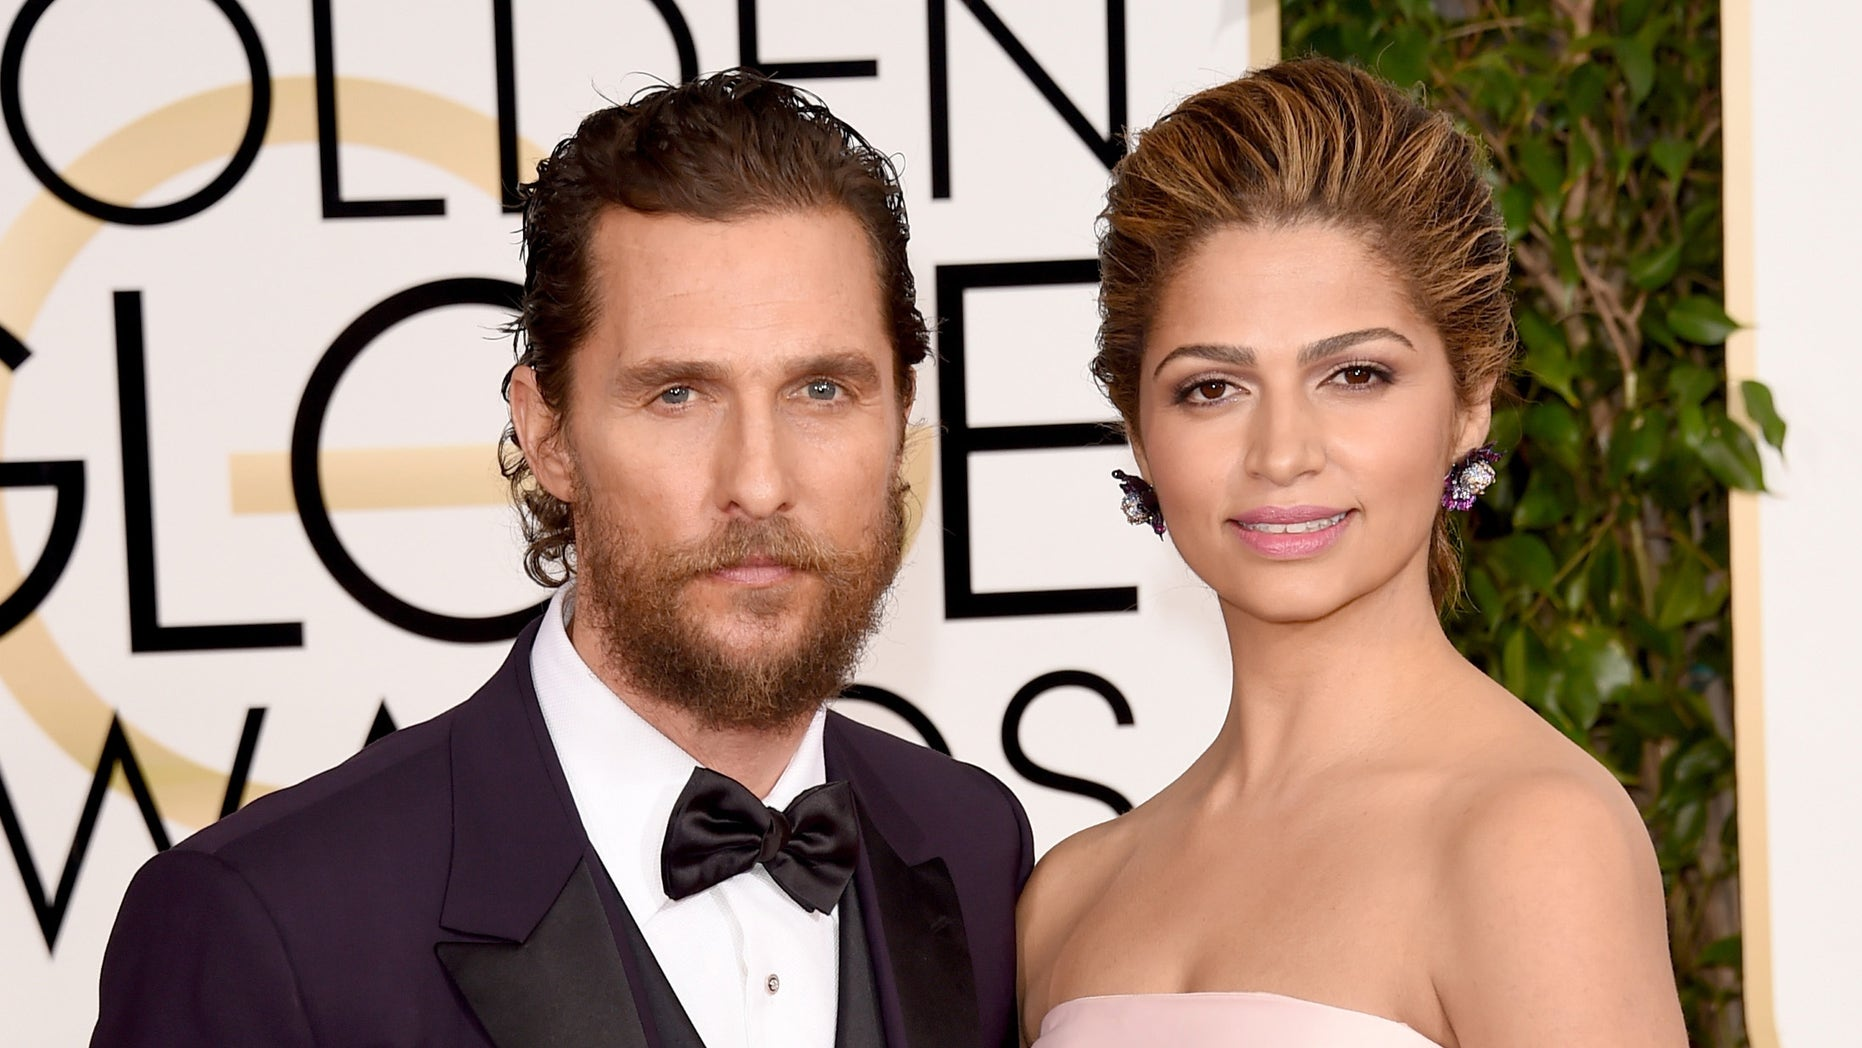 Matthew McConaughey and wife Camila Alves at the Golden Globe Awards on January 11, 2015 in Beverly Hills, California.